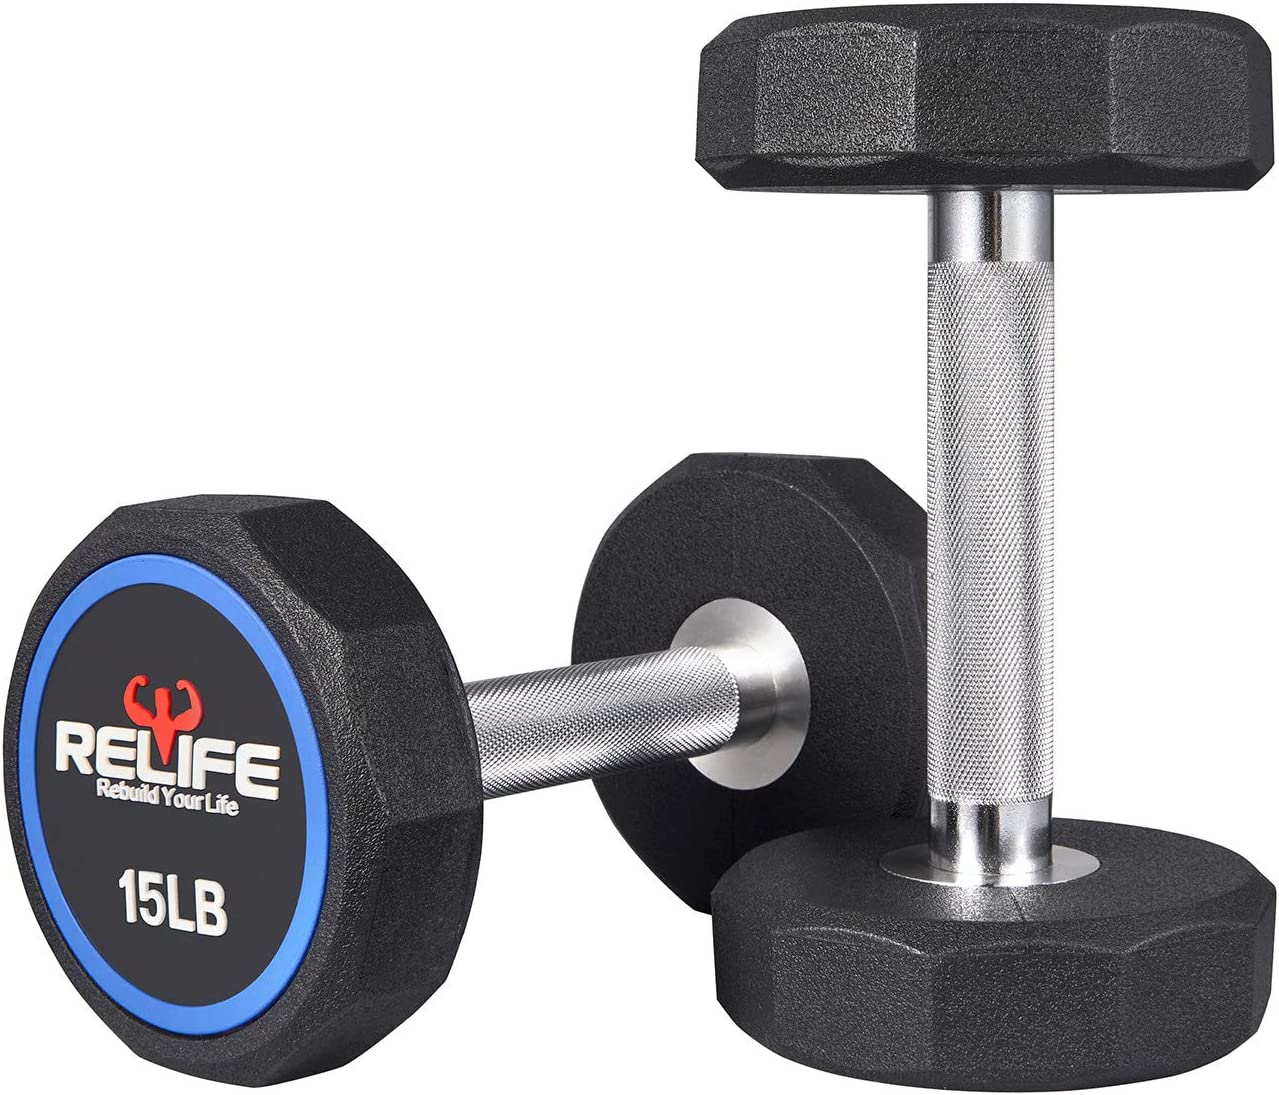 RELIFE REBUILD YOUR LIFE Decagon Dumbbell Heavy Weights Barbell Metal Handles for Strength Training Home Gym Exercise Equipment